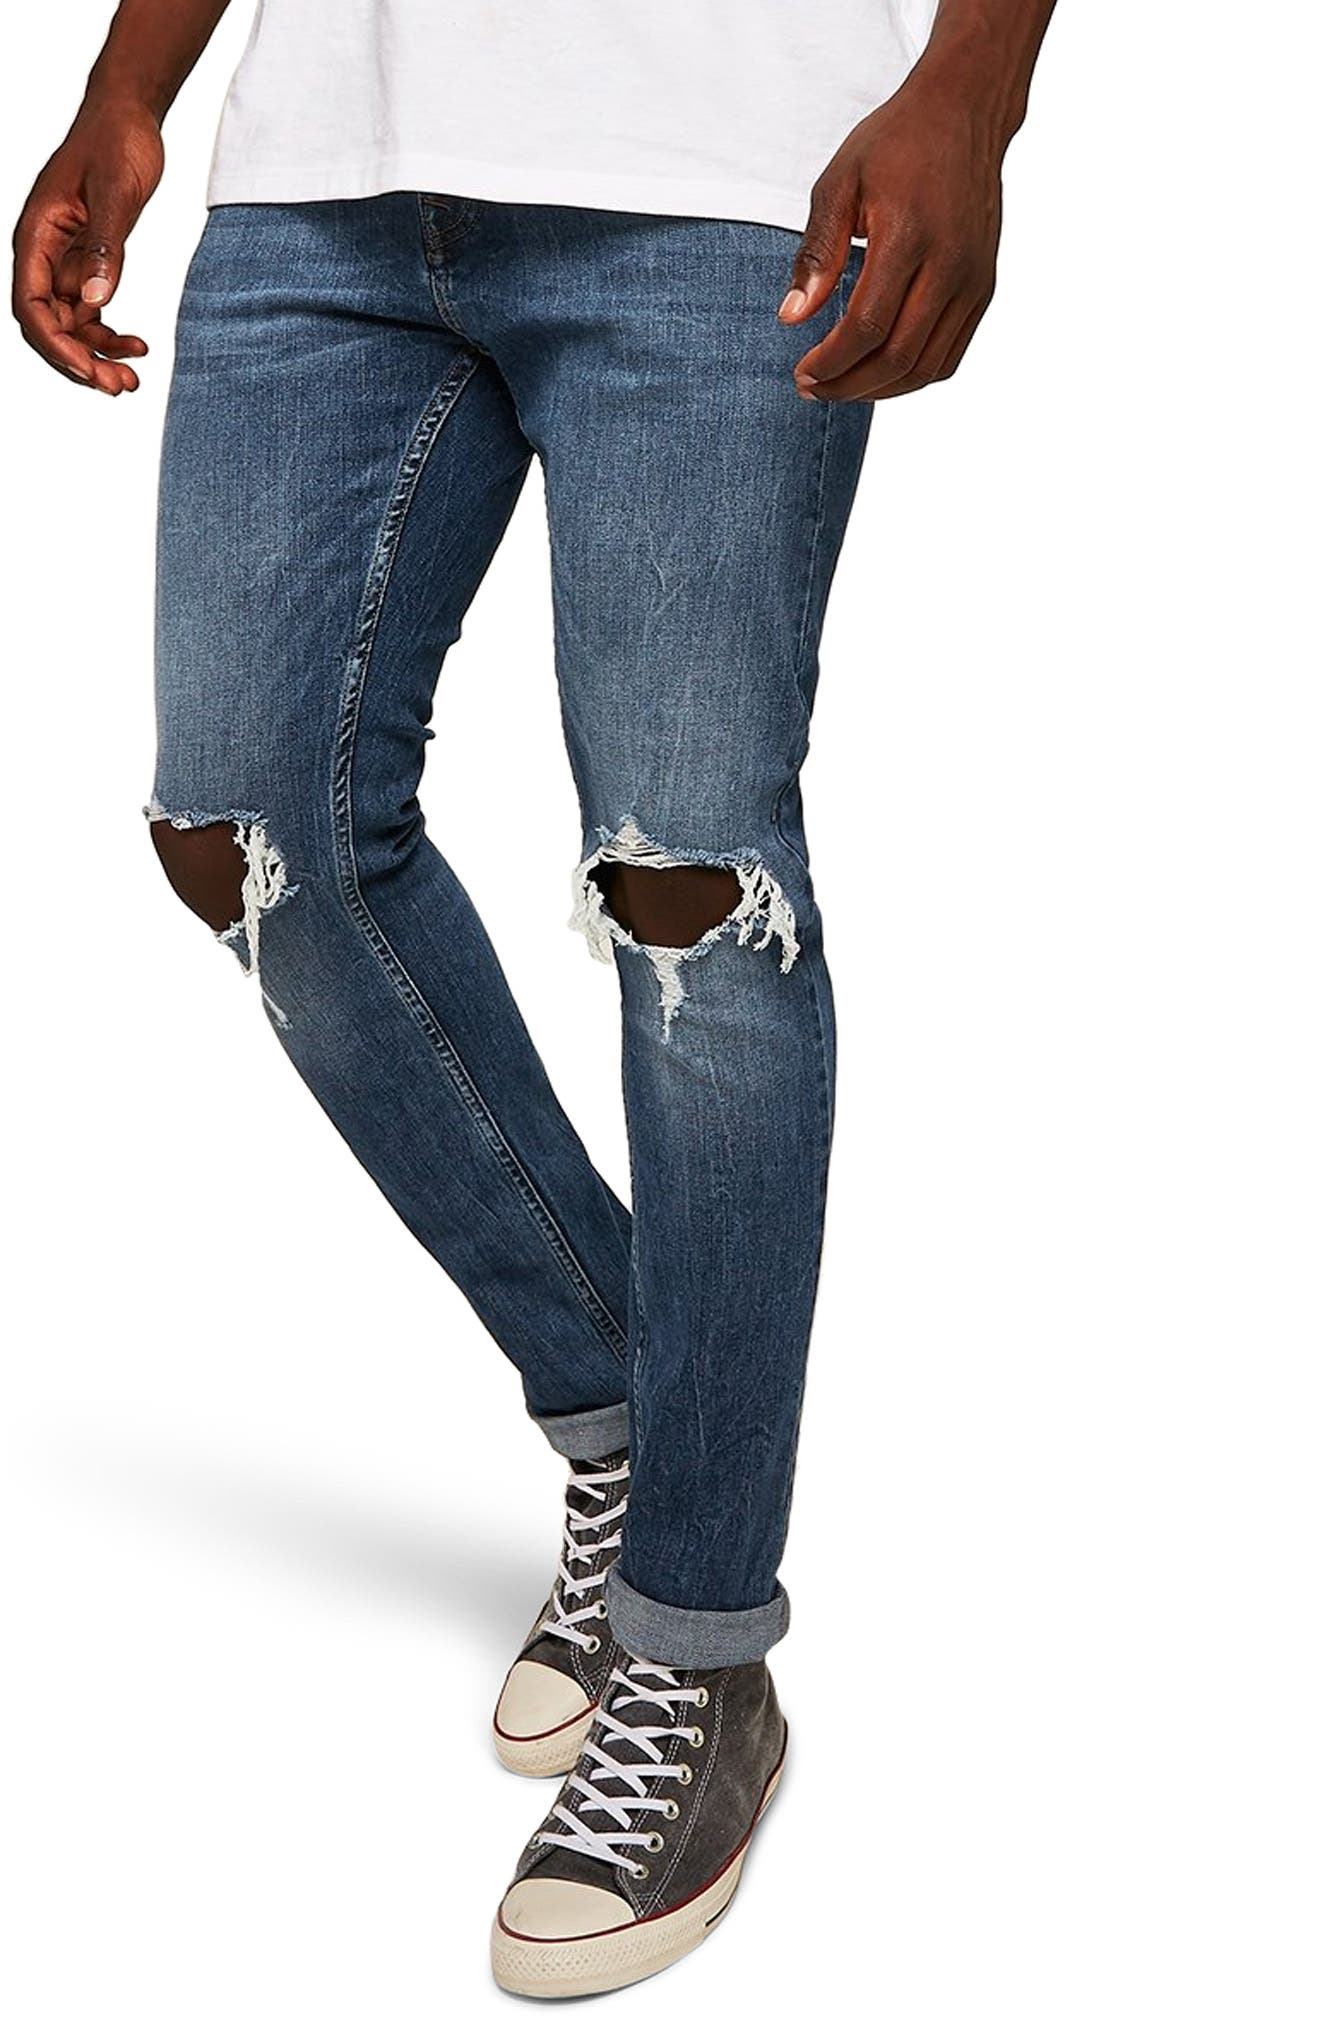 TOPMAN, Polly Ripped Stretch Skinny Jeans, Main thumbnail 1, color, BLUE